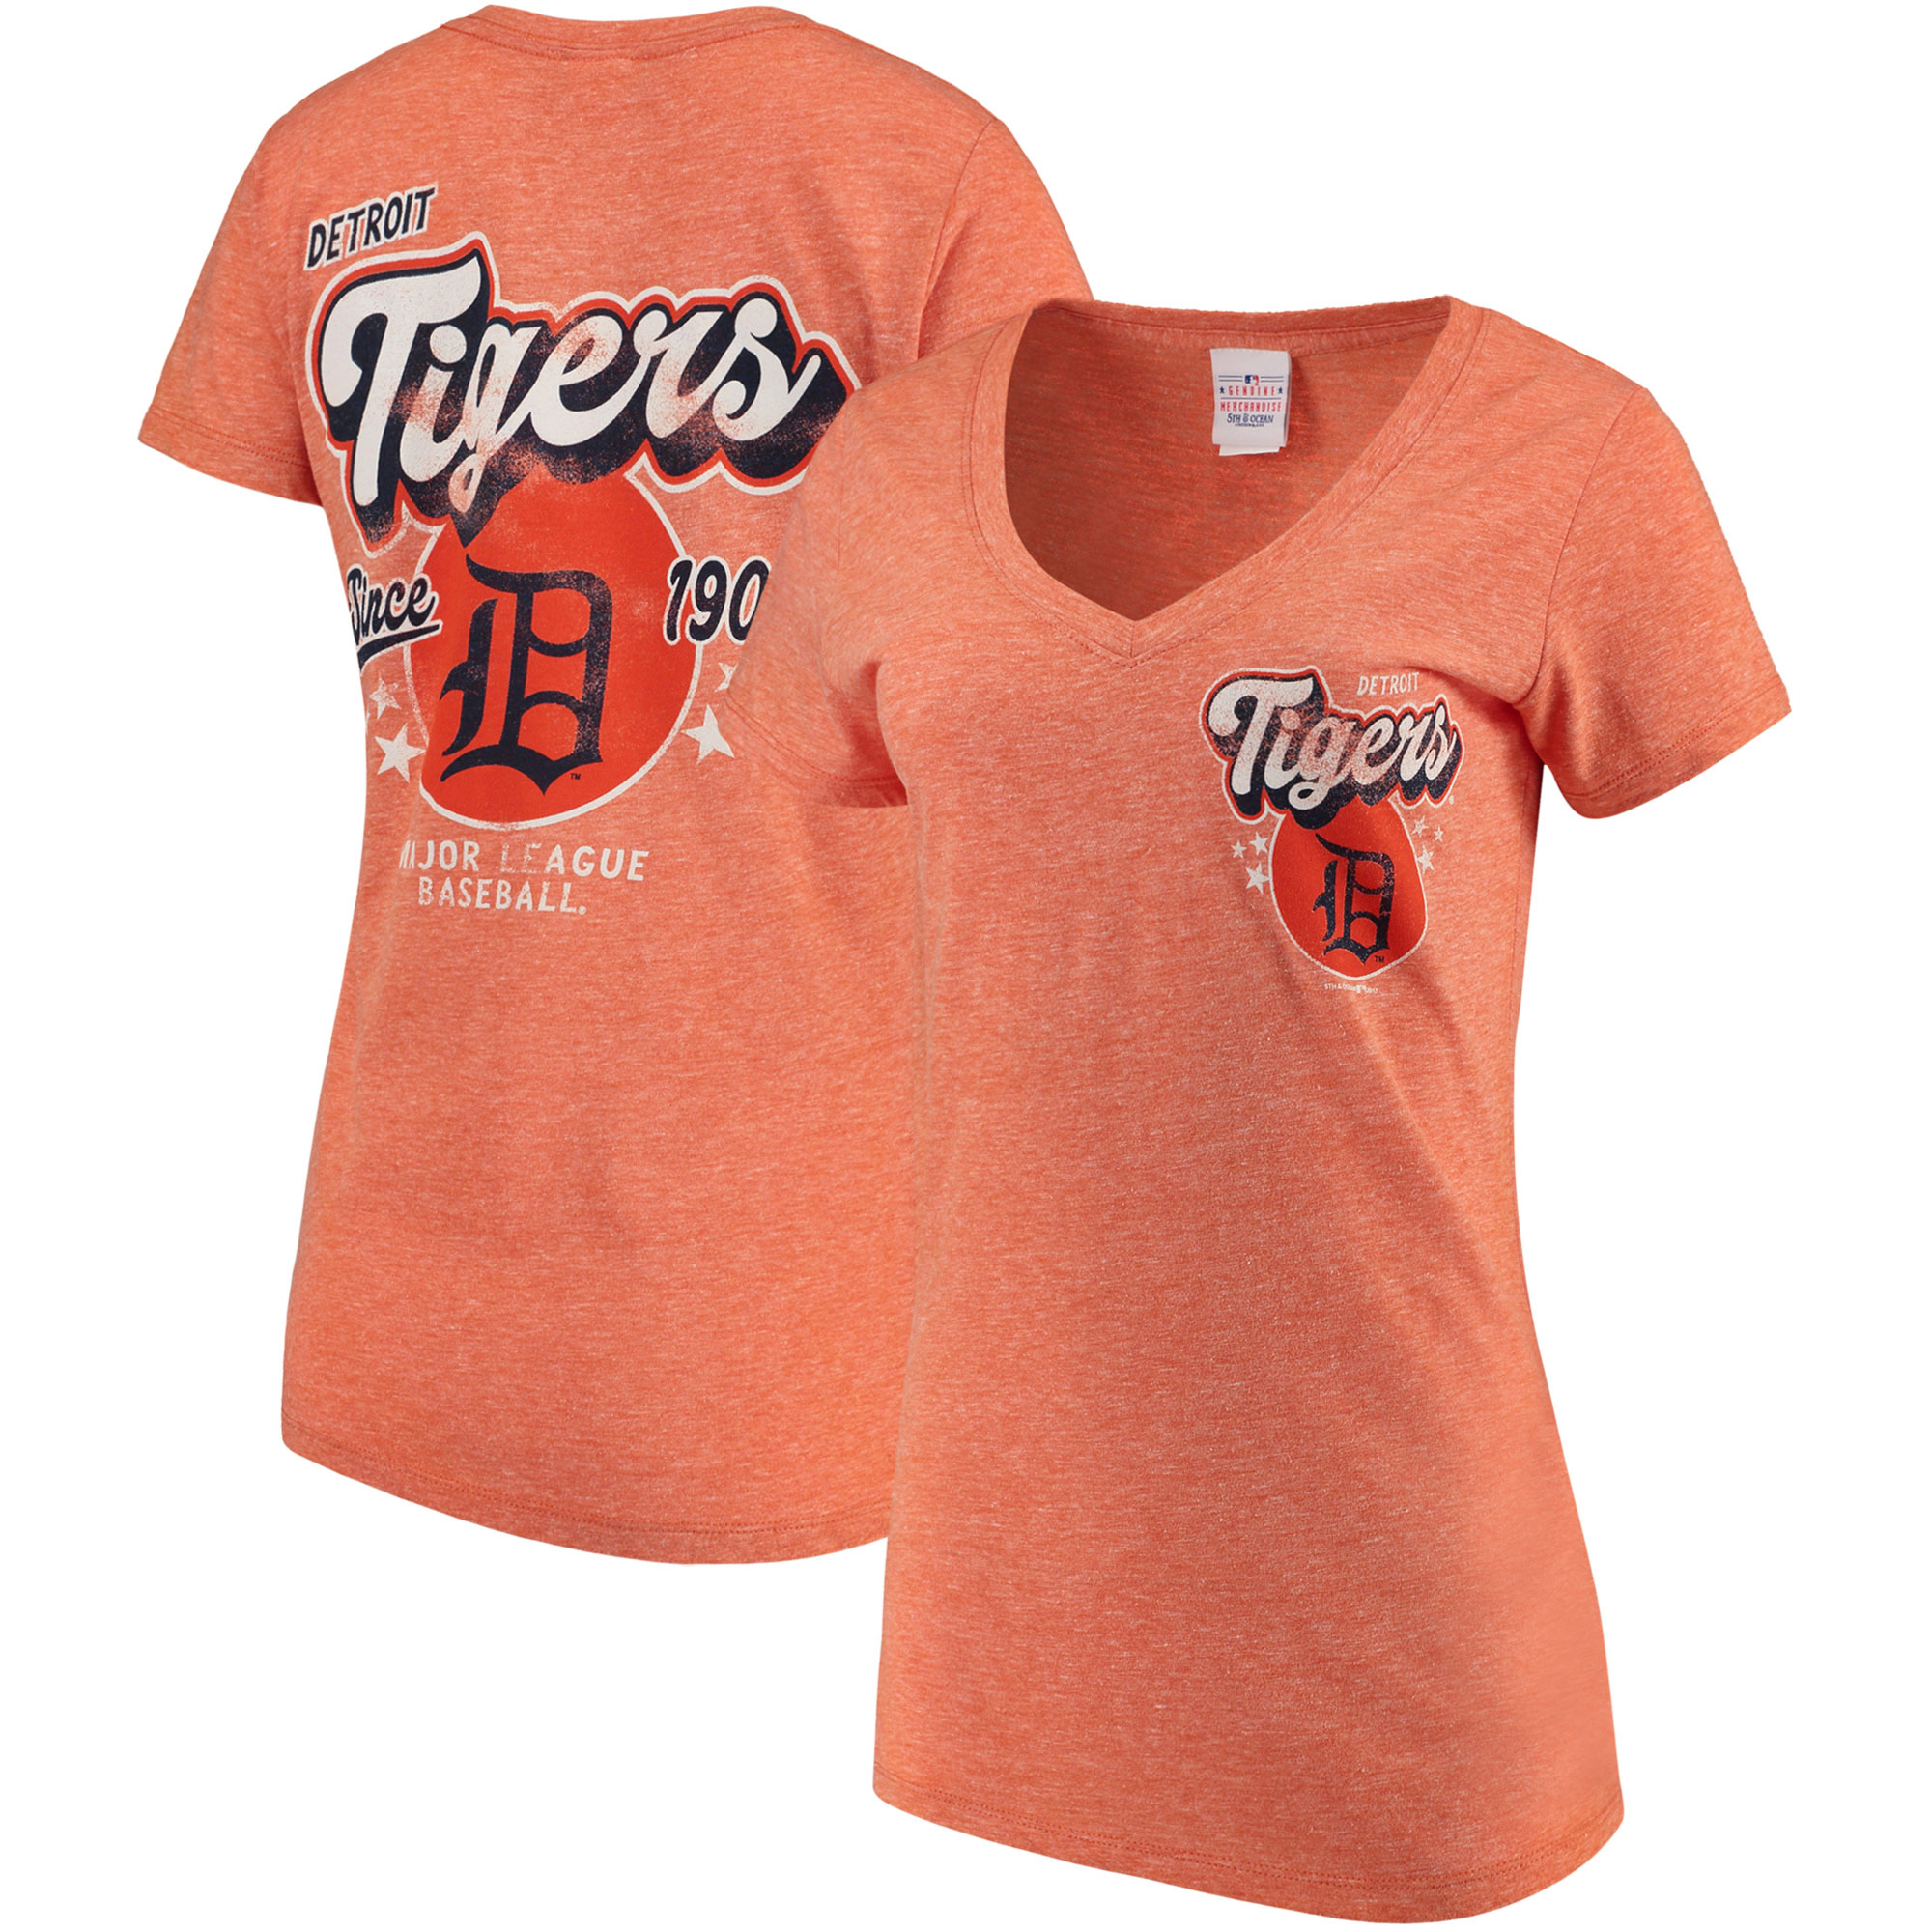 Detroit Tigers 5th & Ocean by New Era Women's Cooperstown Collection Tri-Blend V-Neck T-Shirt - Heathered Orange